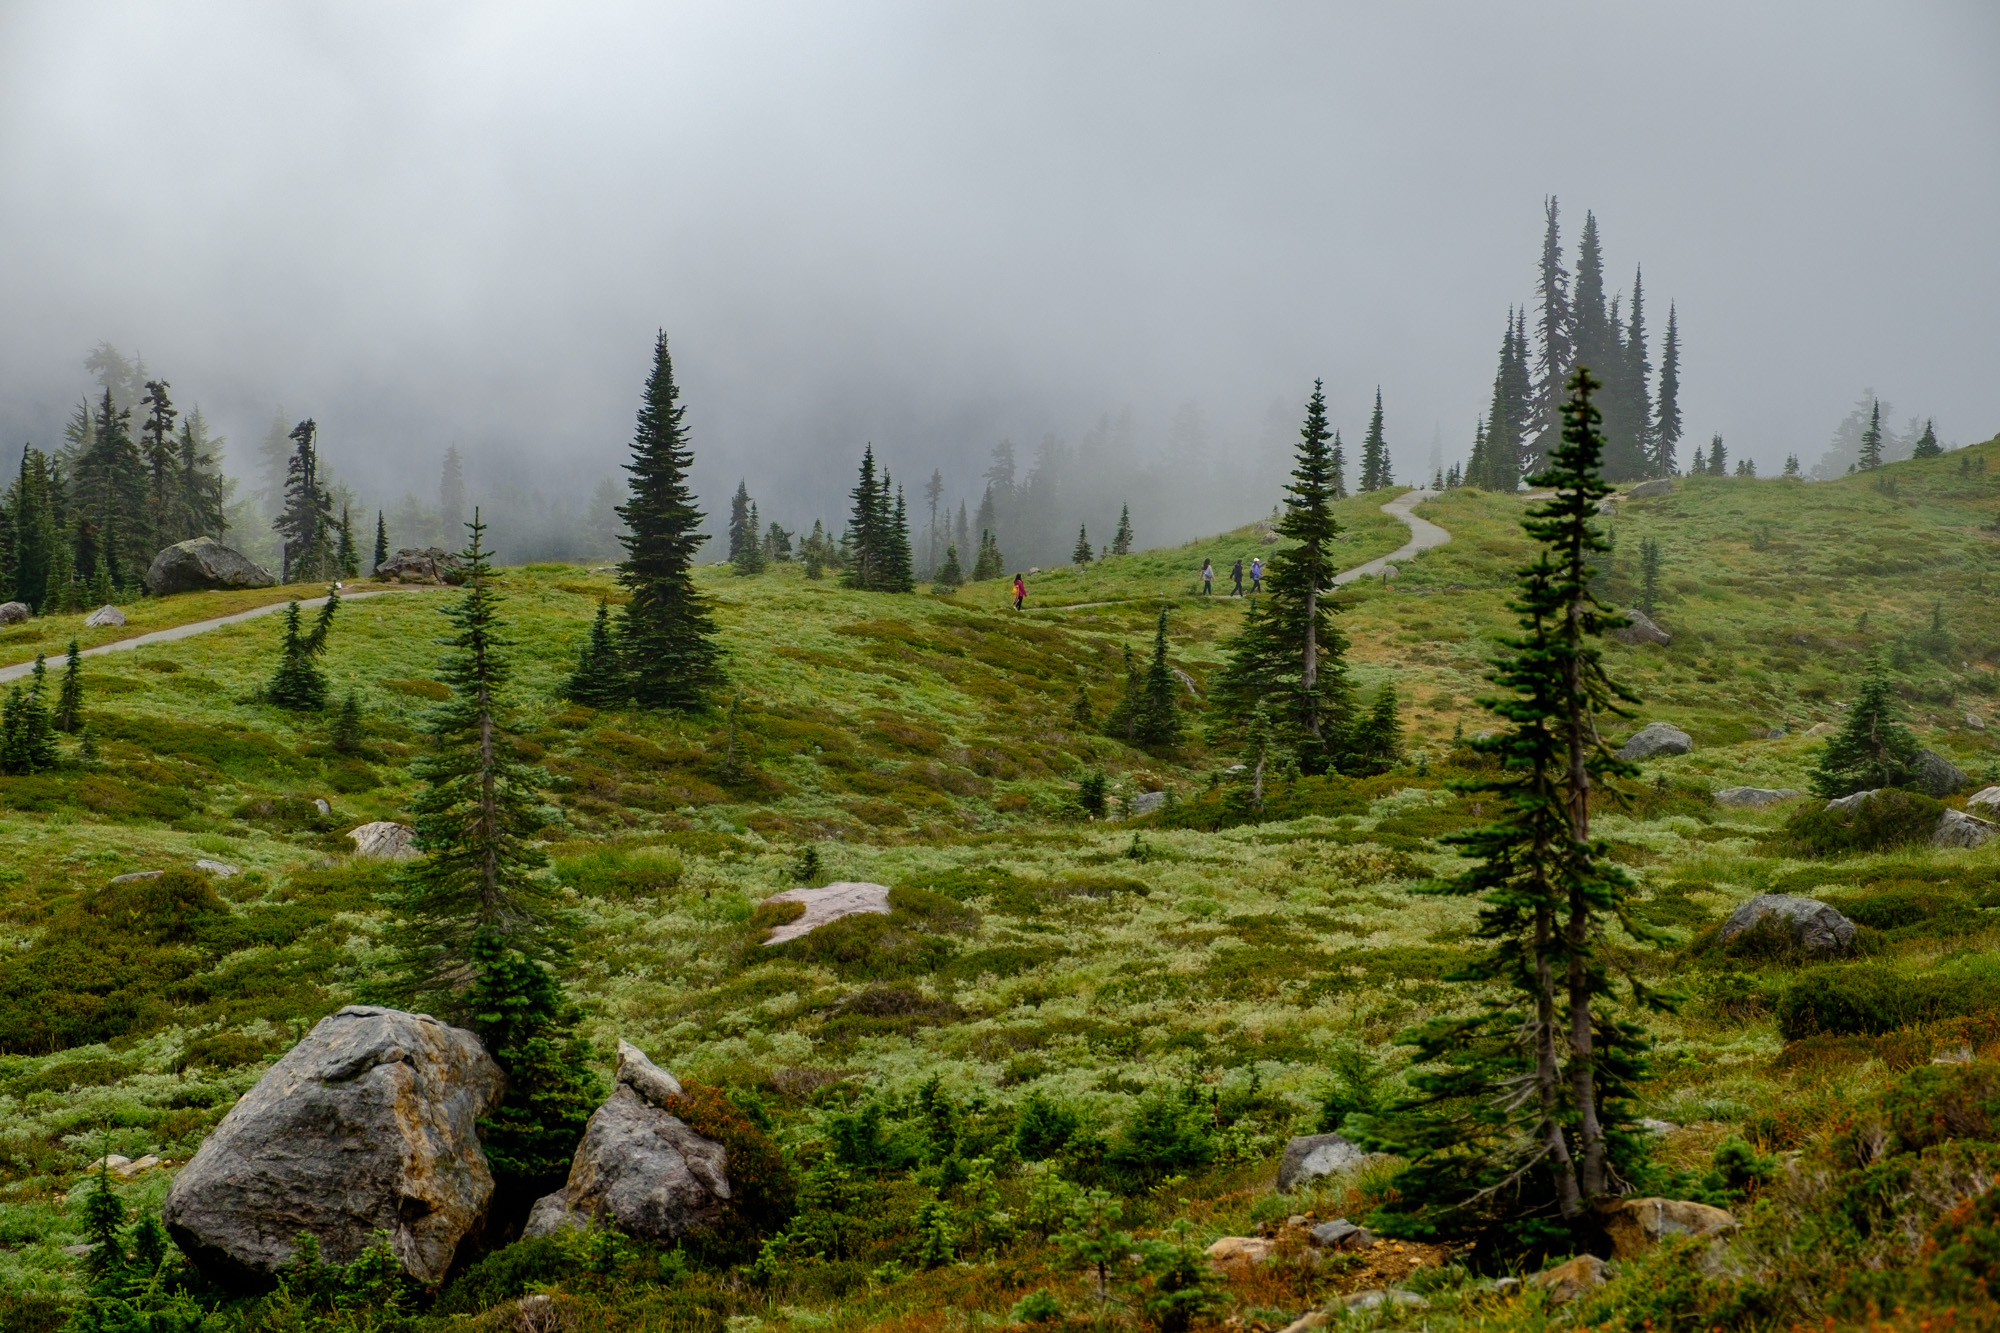 The beautiful landscape at Skyline Trail.